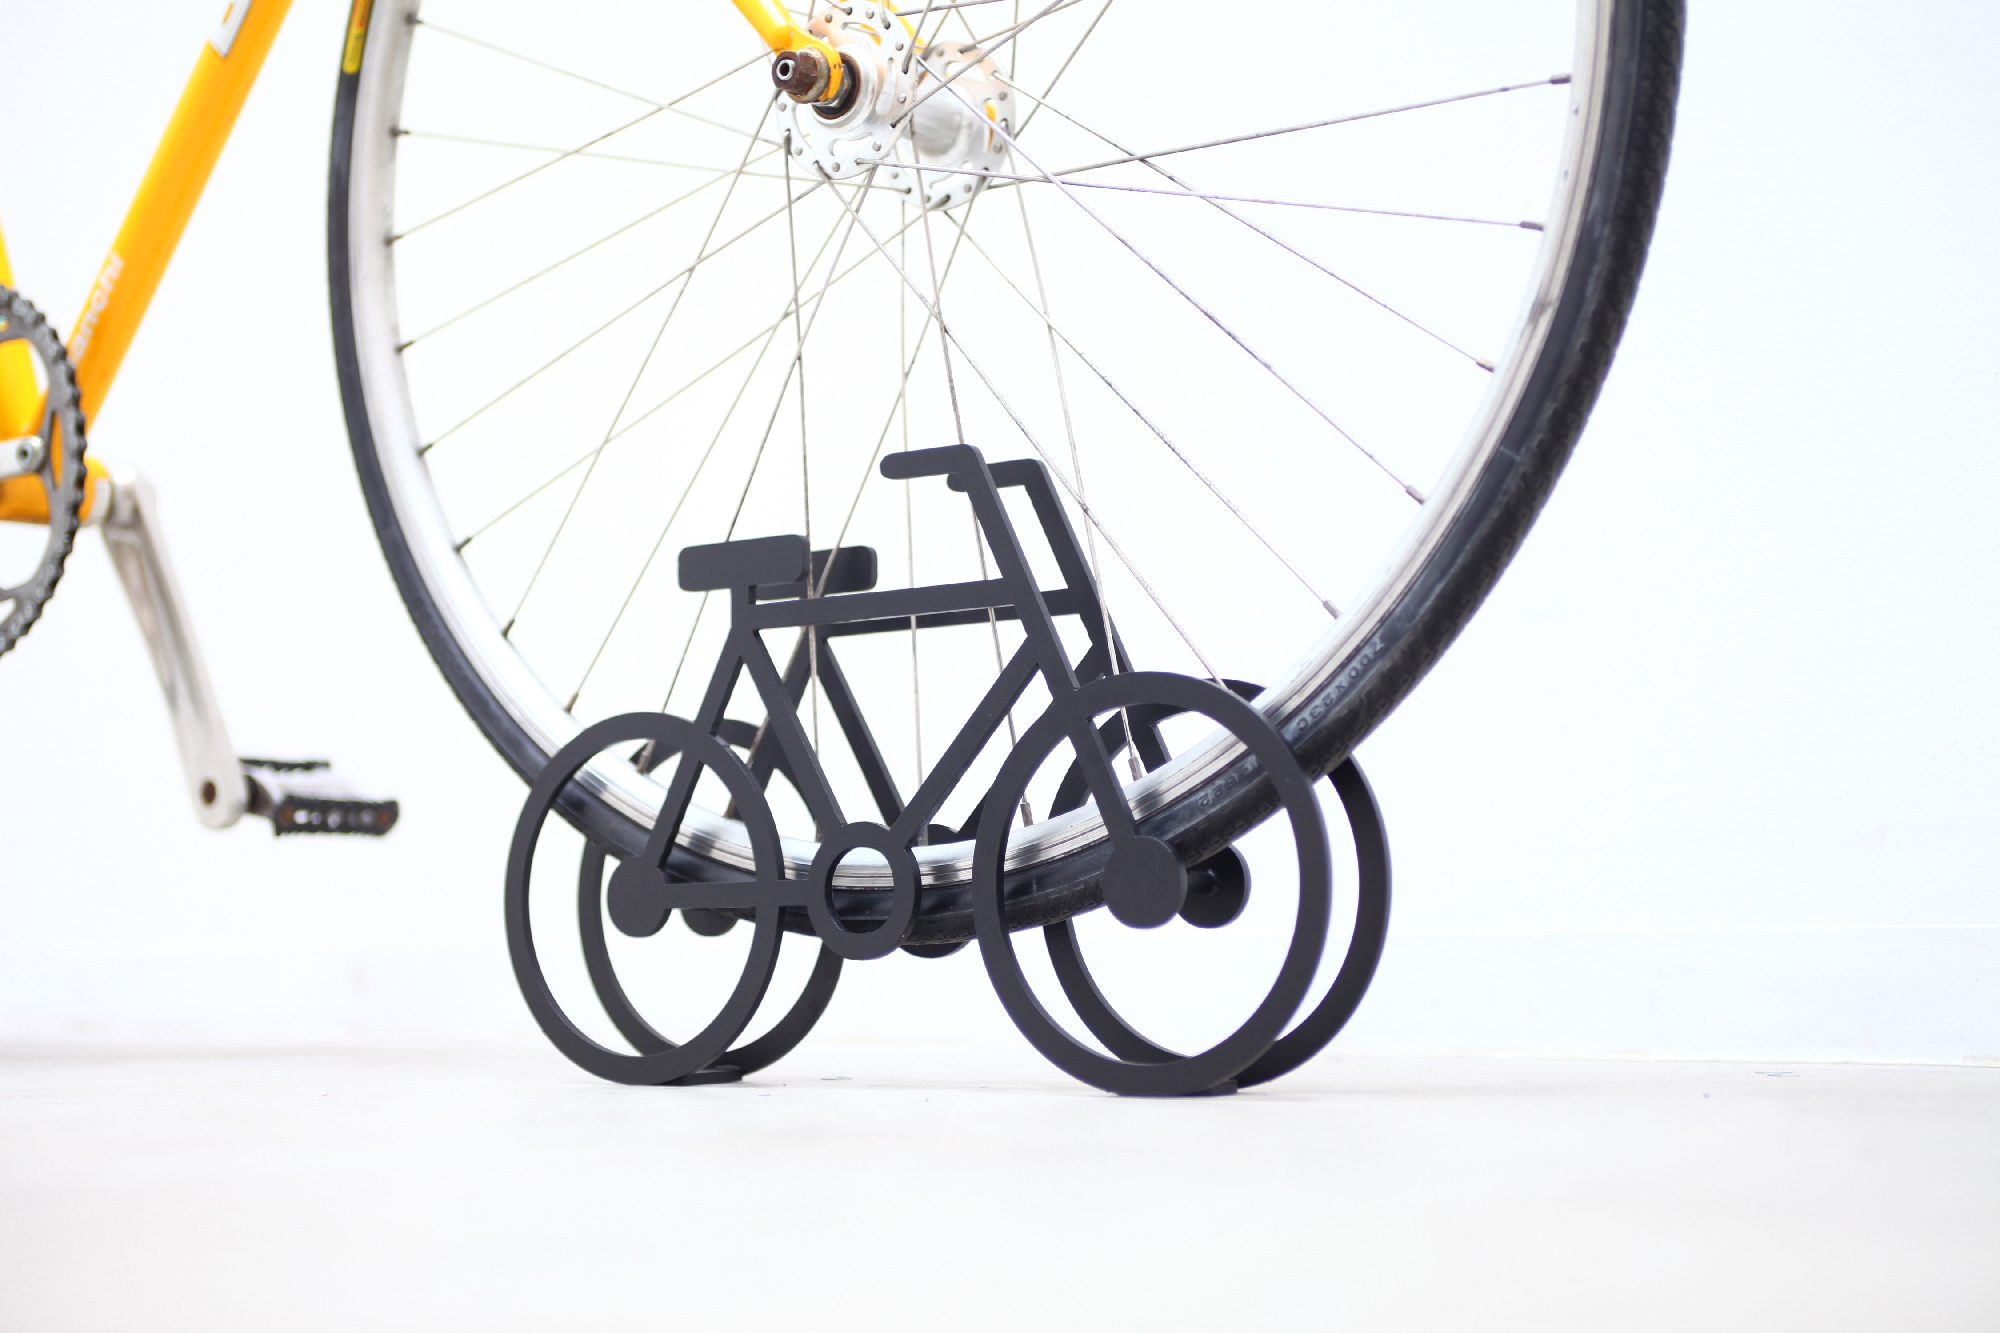 on_bicycle_stand_08.jpg